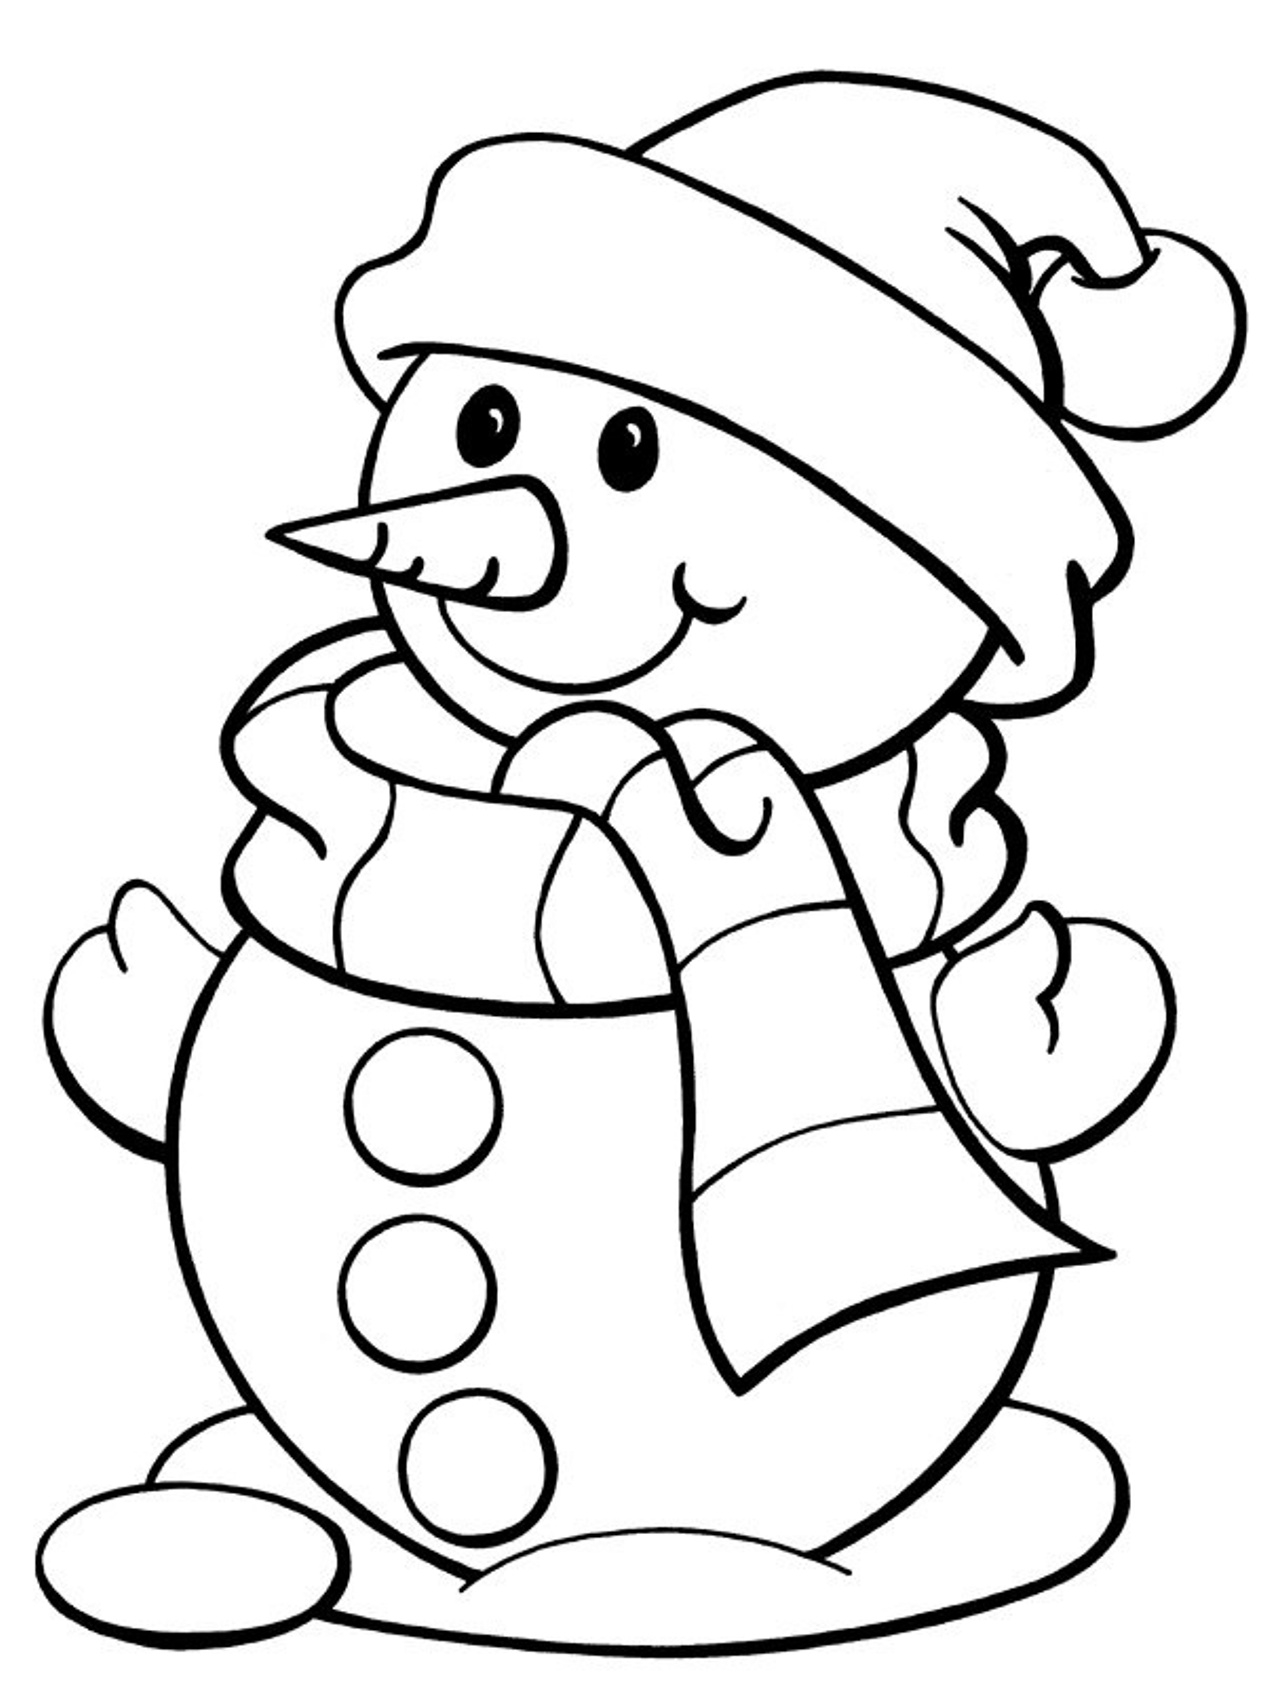 winter time coloring pages - winter coloring pages to download and print for free